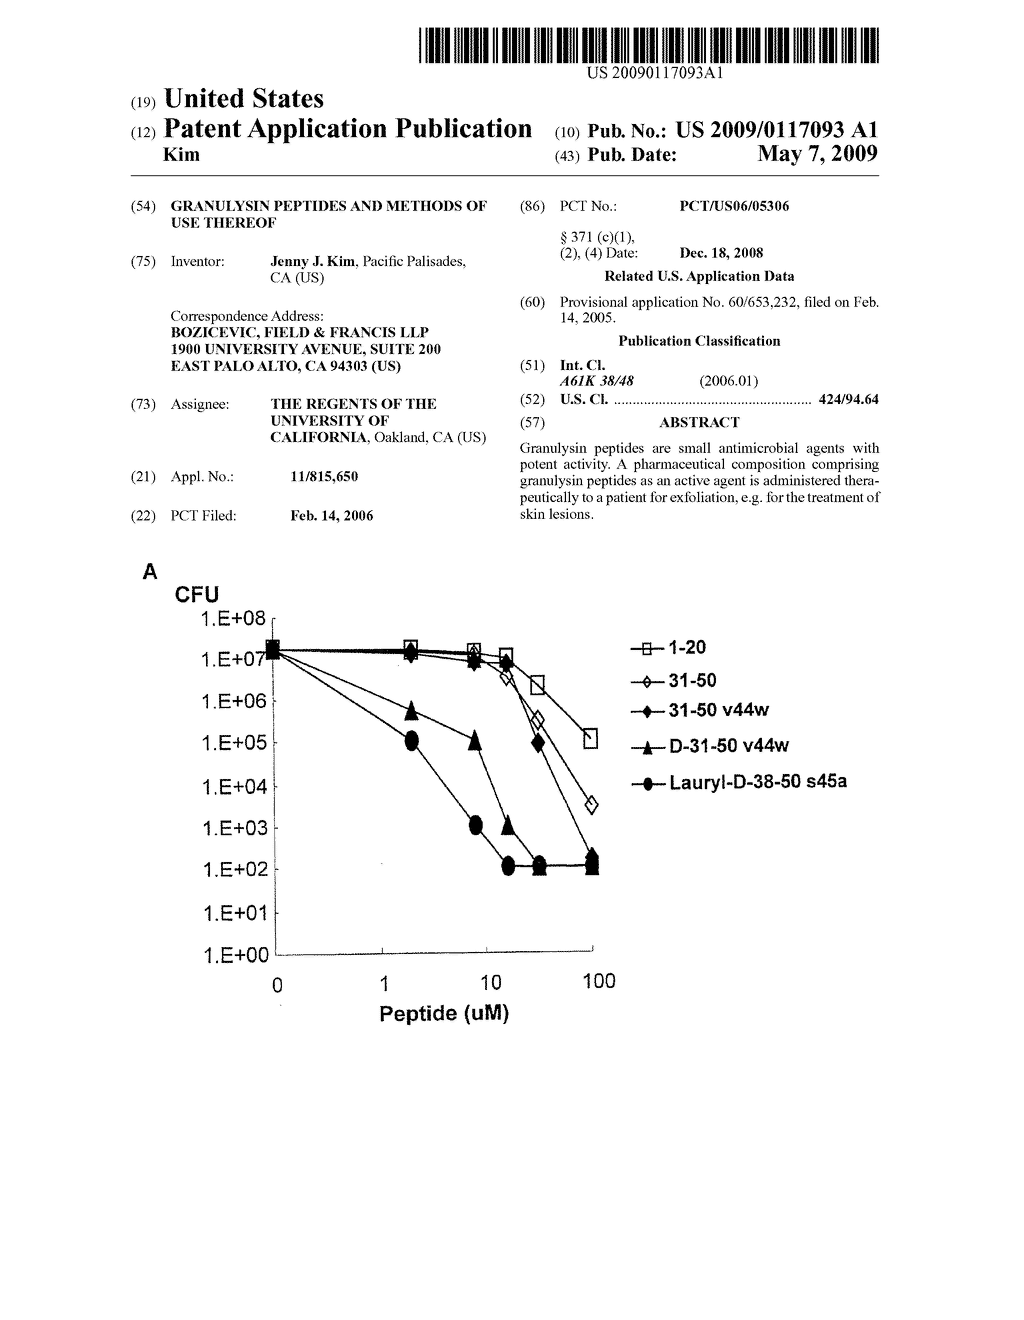 GRANULYSIN PEPTIDES AND METHODS OF USE THEREOF - diagram, schematic, and image 01